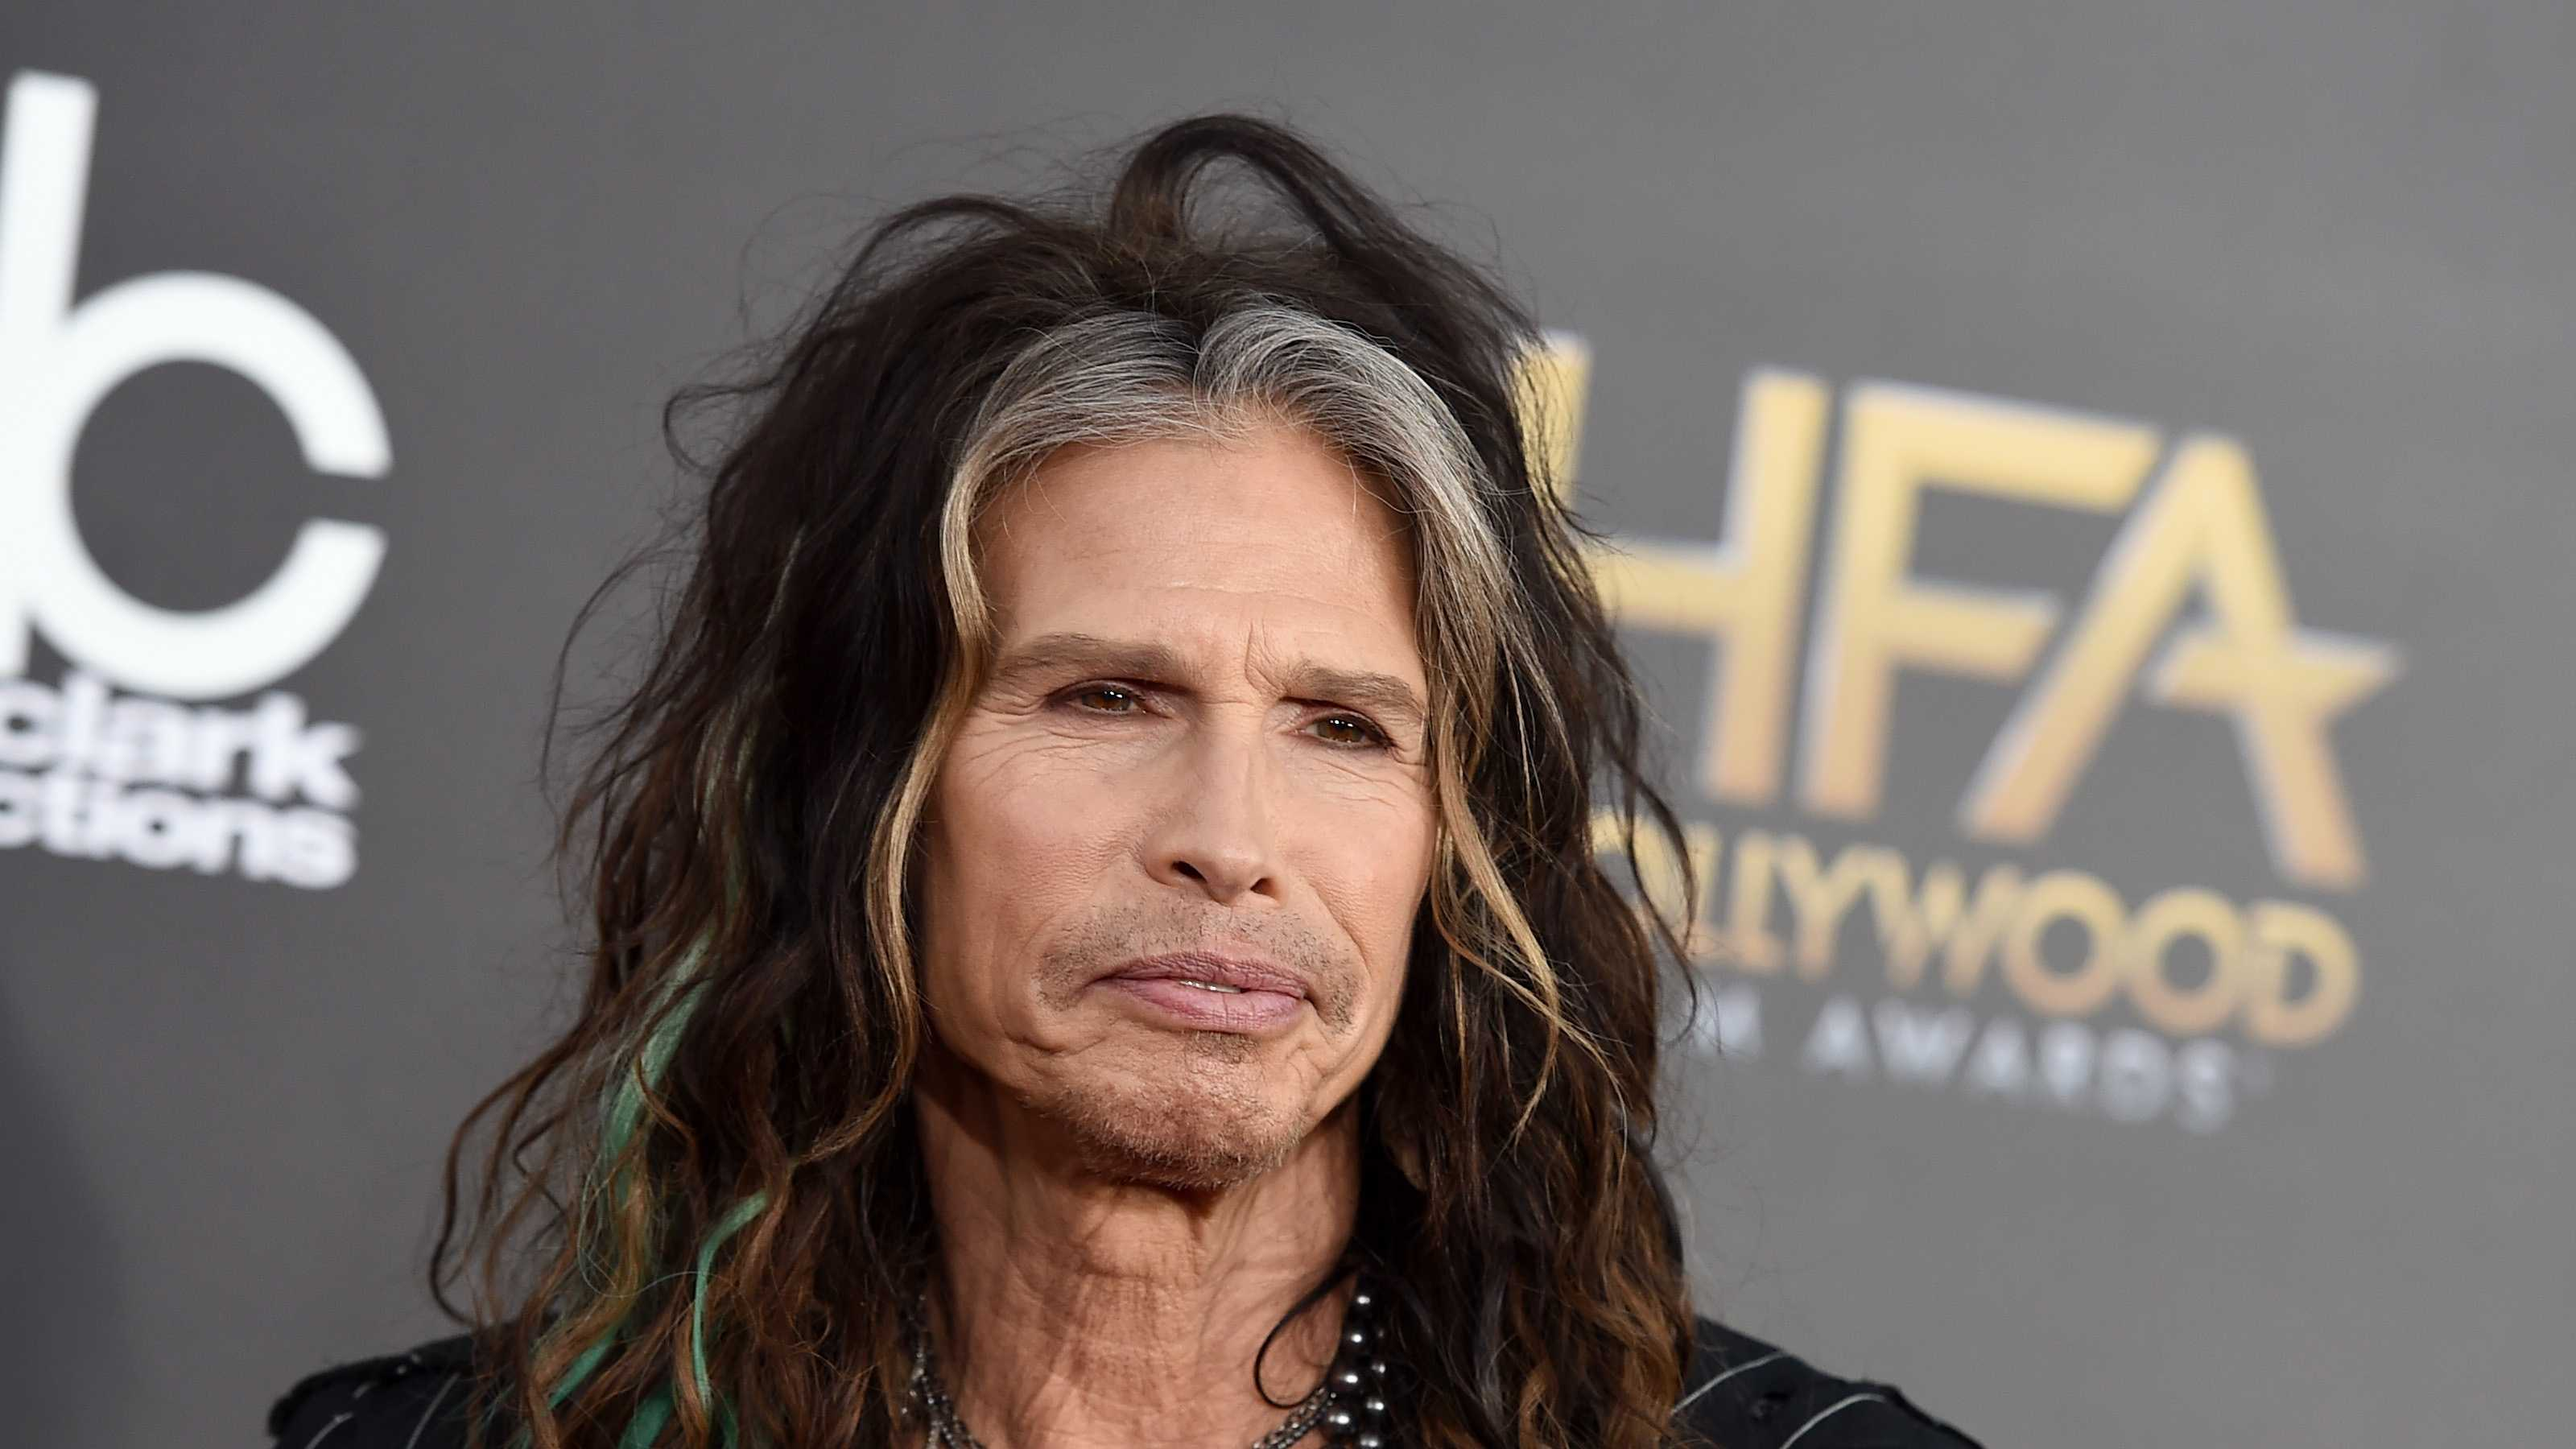 """Steven Tyler arrives at the Hollywood Film Awards at the Palladium, in Los Angeles. Aerosmith frontman Tyler is asking Republican presidential candidate Donald Trump to stop using the power ballad """"Dream On"""" at campaign events."""